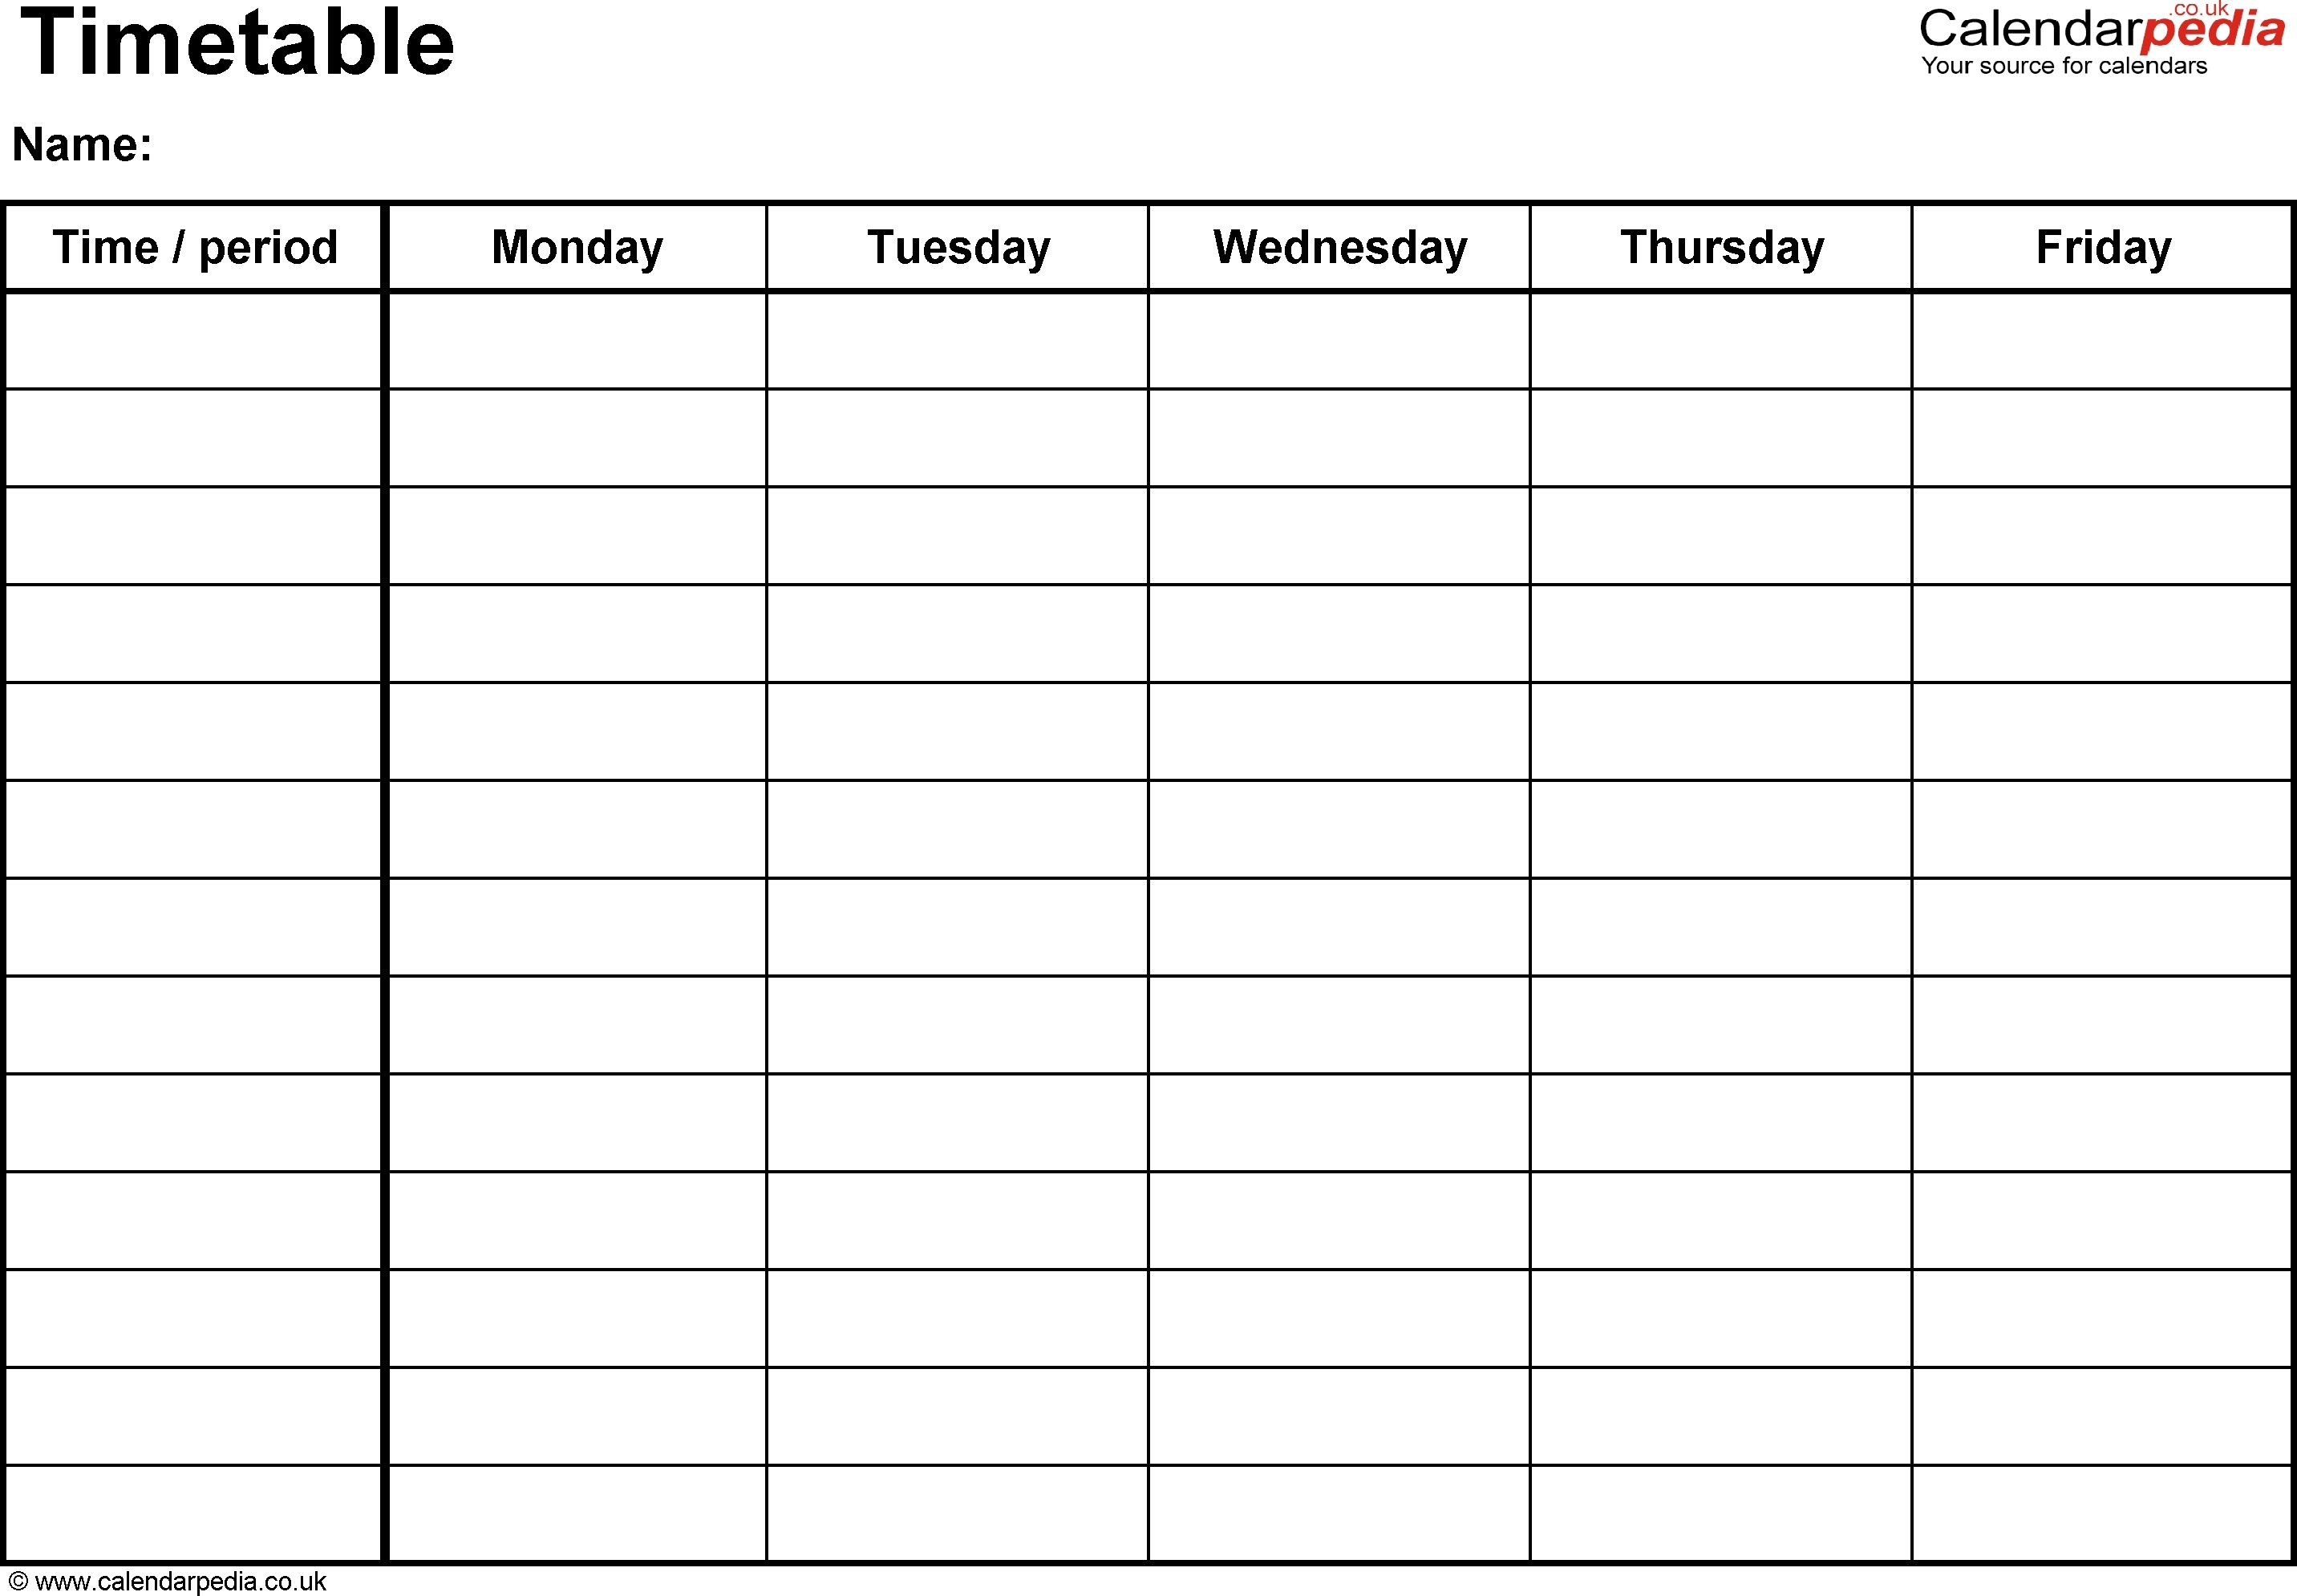 Weekly Schedule Monday Through Friday | Template Calendar Printable in Monday Through Friday Calendar With Times